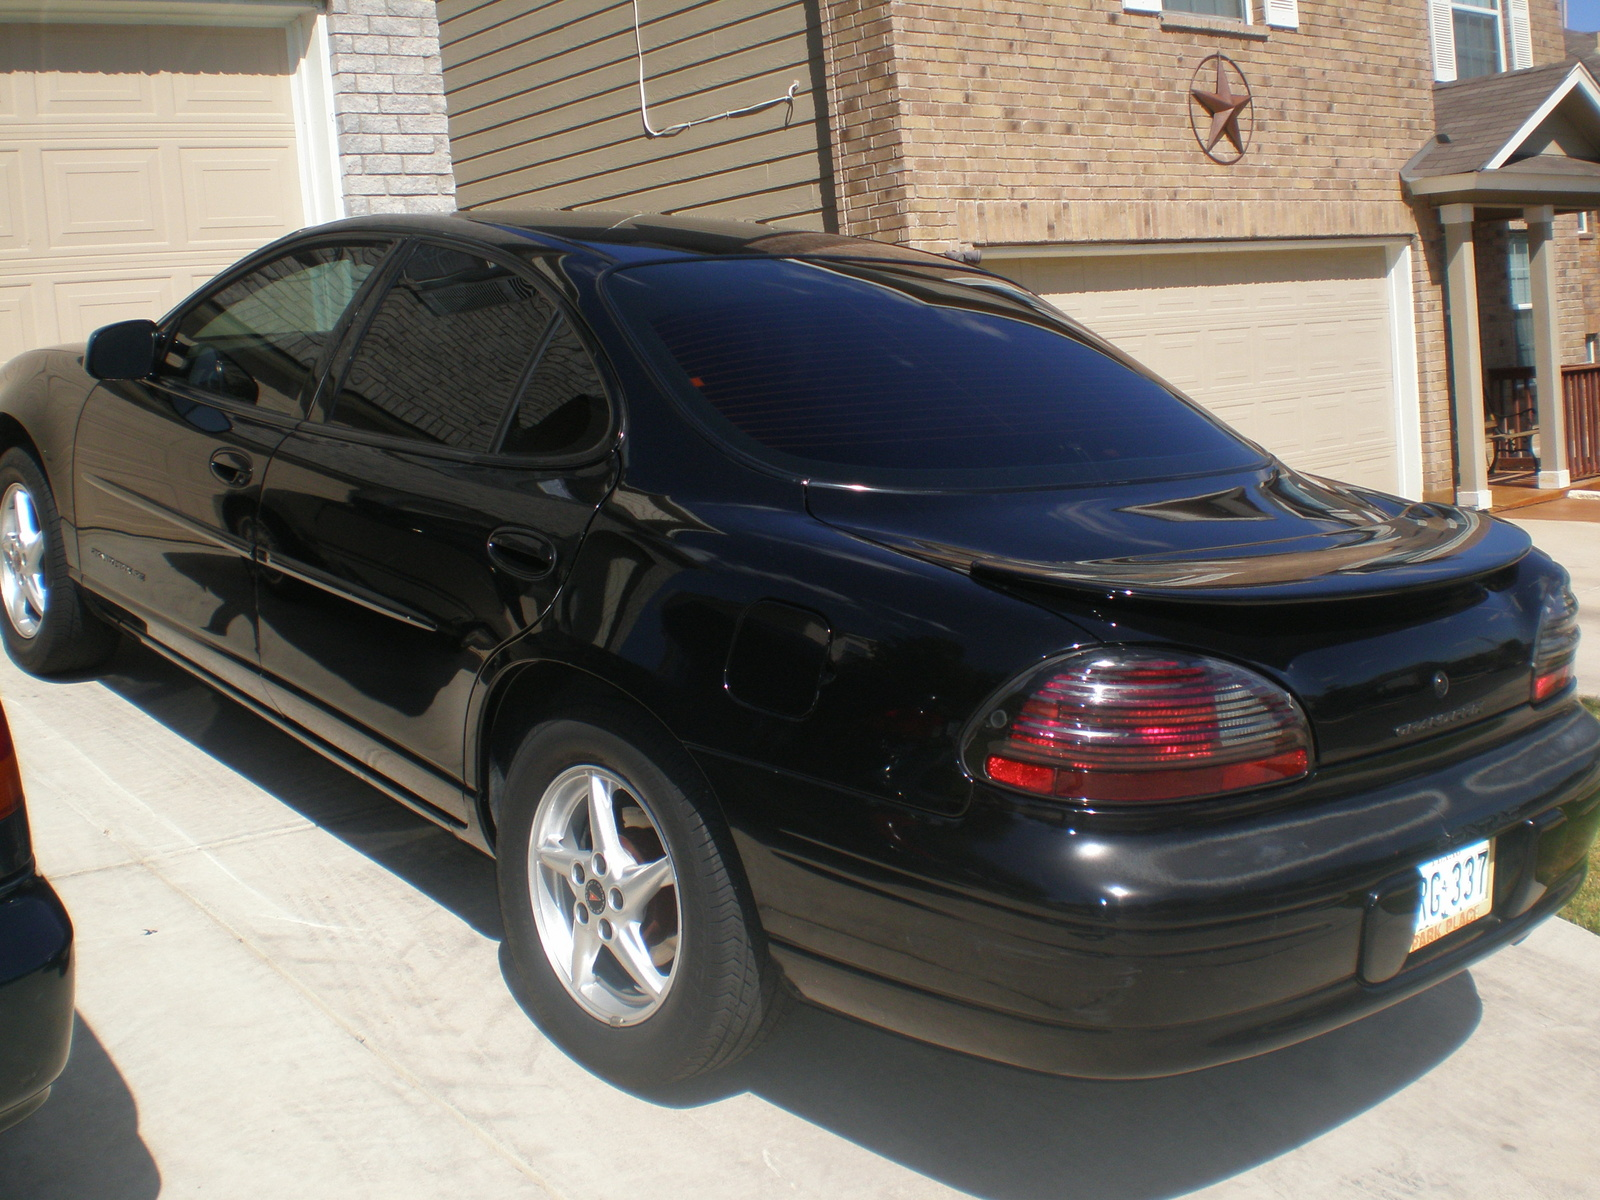 2001 Pontiac Grand Prix SE - Pictures - Picture of 2001 Pontiac Grand ...